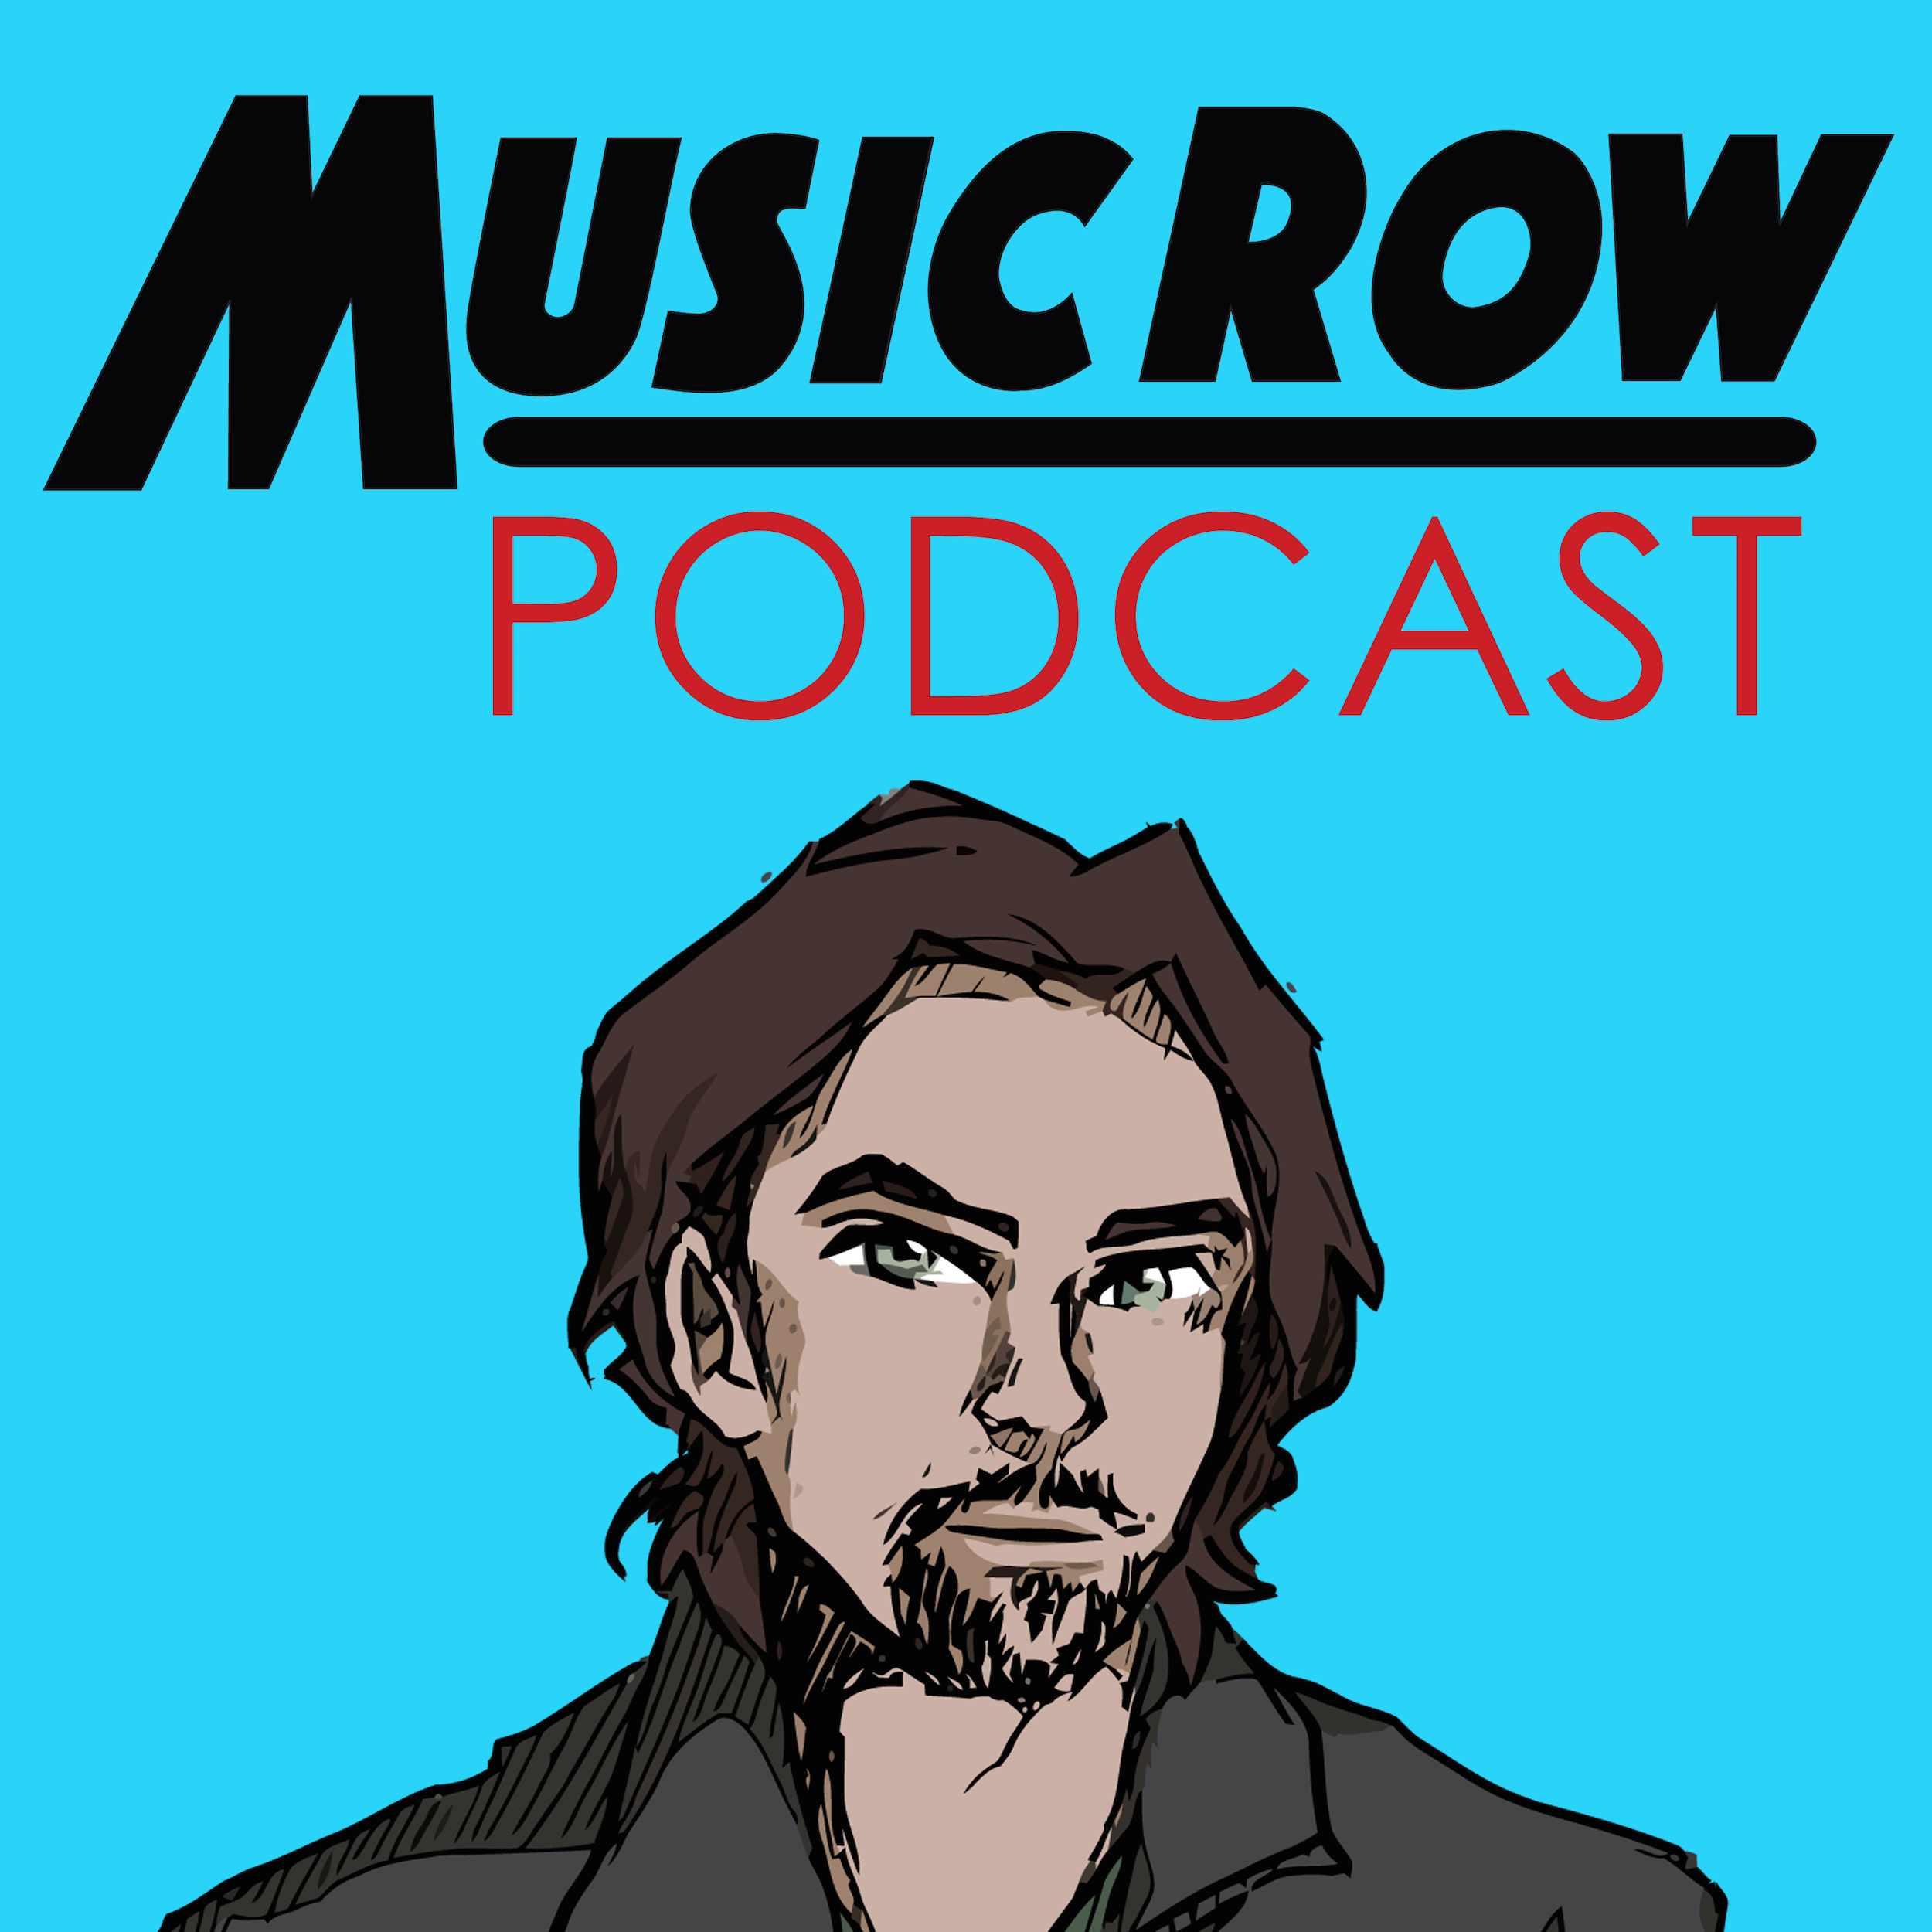 Episode 03: The Band Perry show art